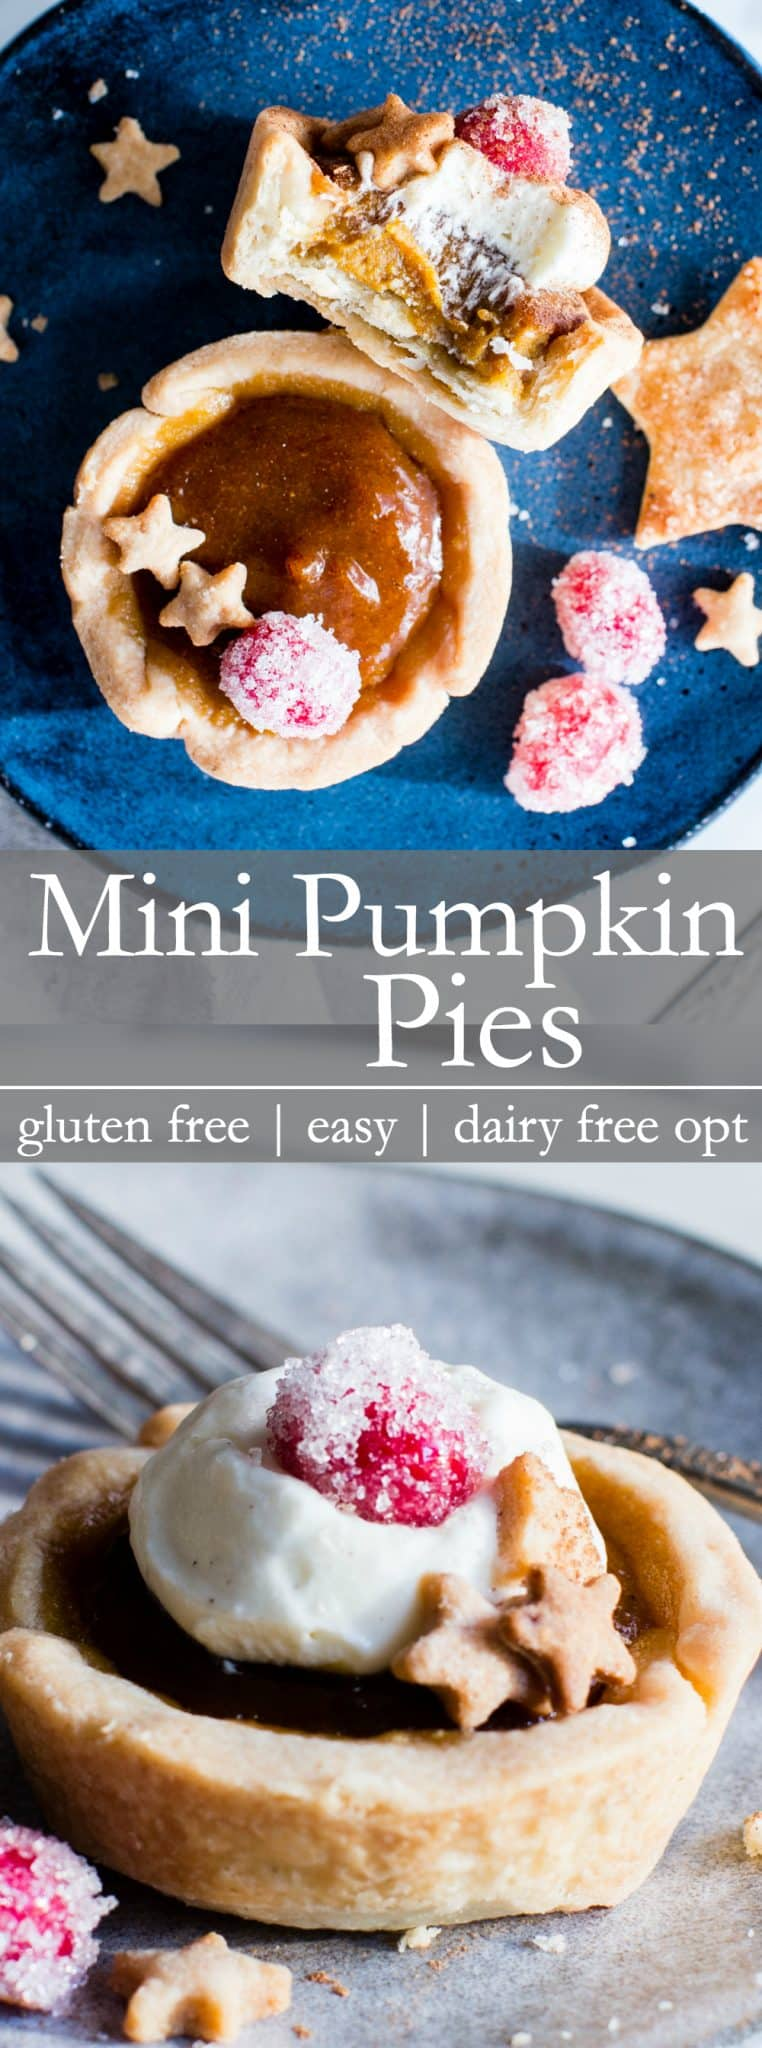 For holiday baking and easy sharing, these Gluten Free Mini Pumpkin Pies are simple to pull together. With a crispy, all the way around, pastry, and creamy center with balanced spice and not too much sugar, these little confections are pure pumpkin pie bliss! #PumpkinPie #MiniPumpkinPie #glutenfree + #dairyfree option (ad)